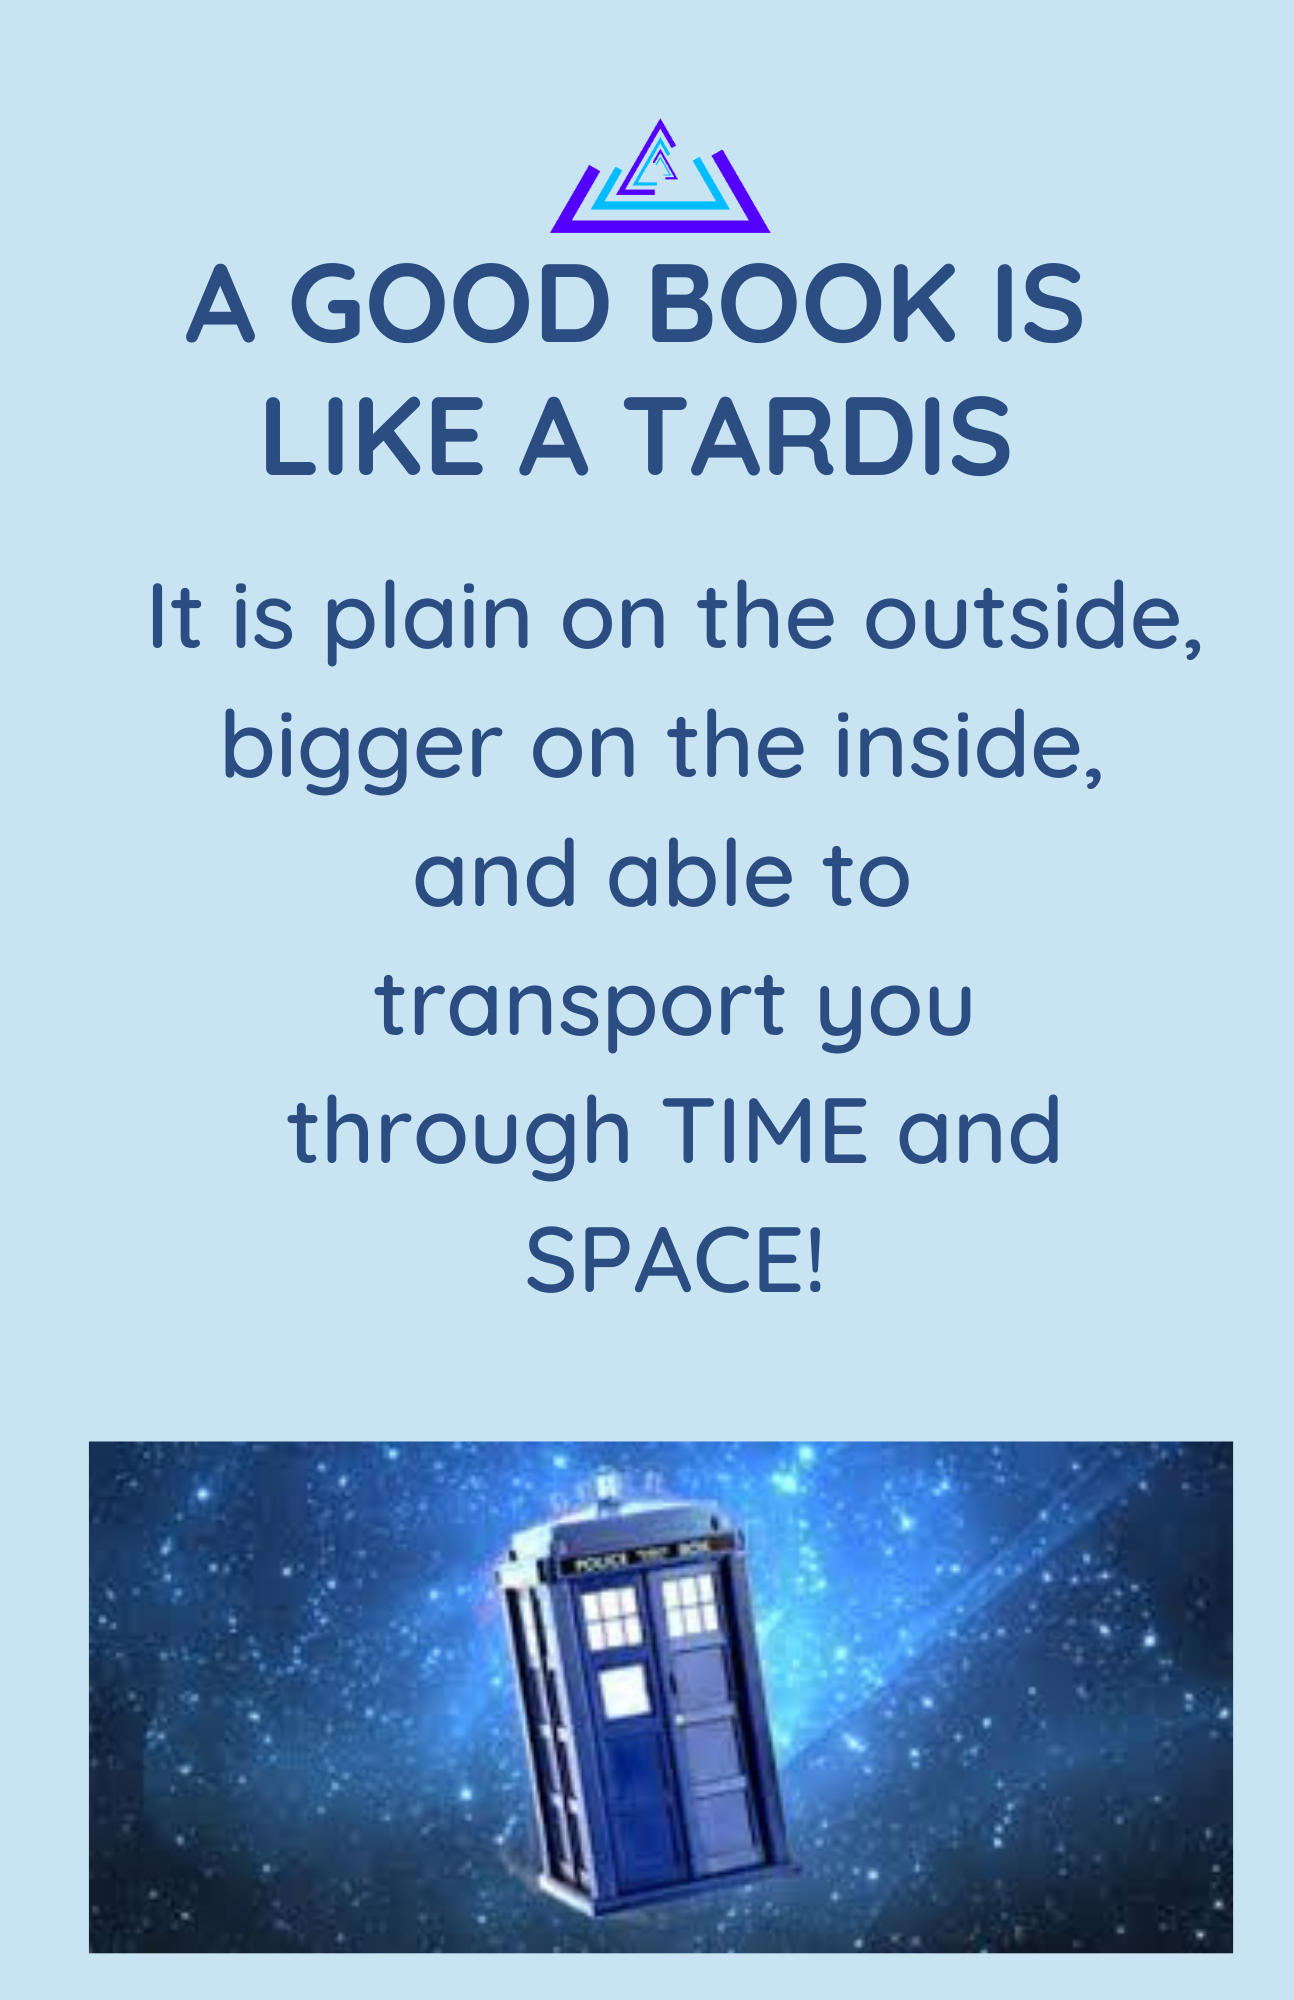 Under words is an image of a tardis (or phone booth) from BBC show Dr. Who